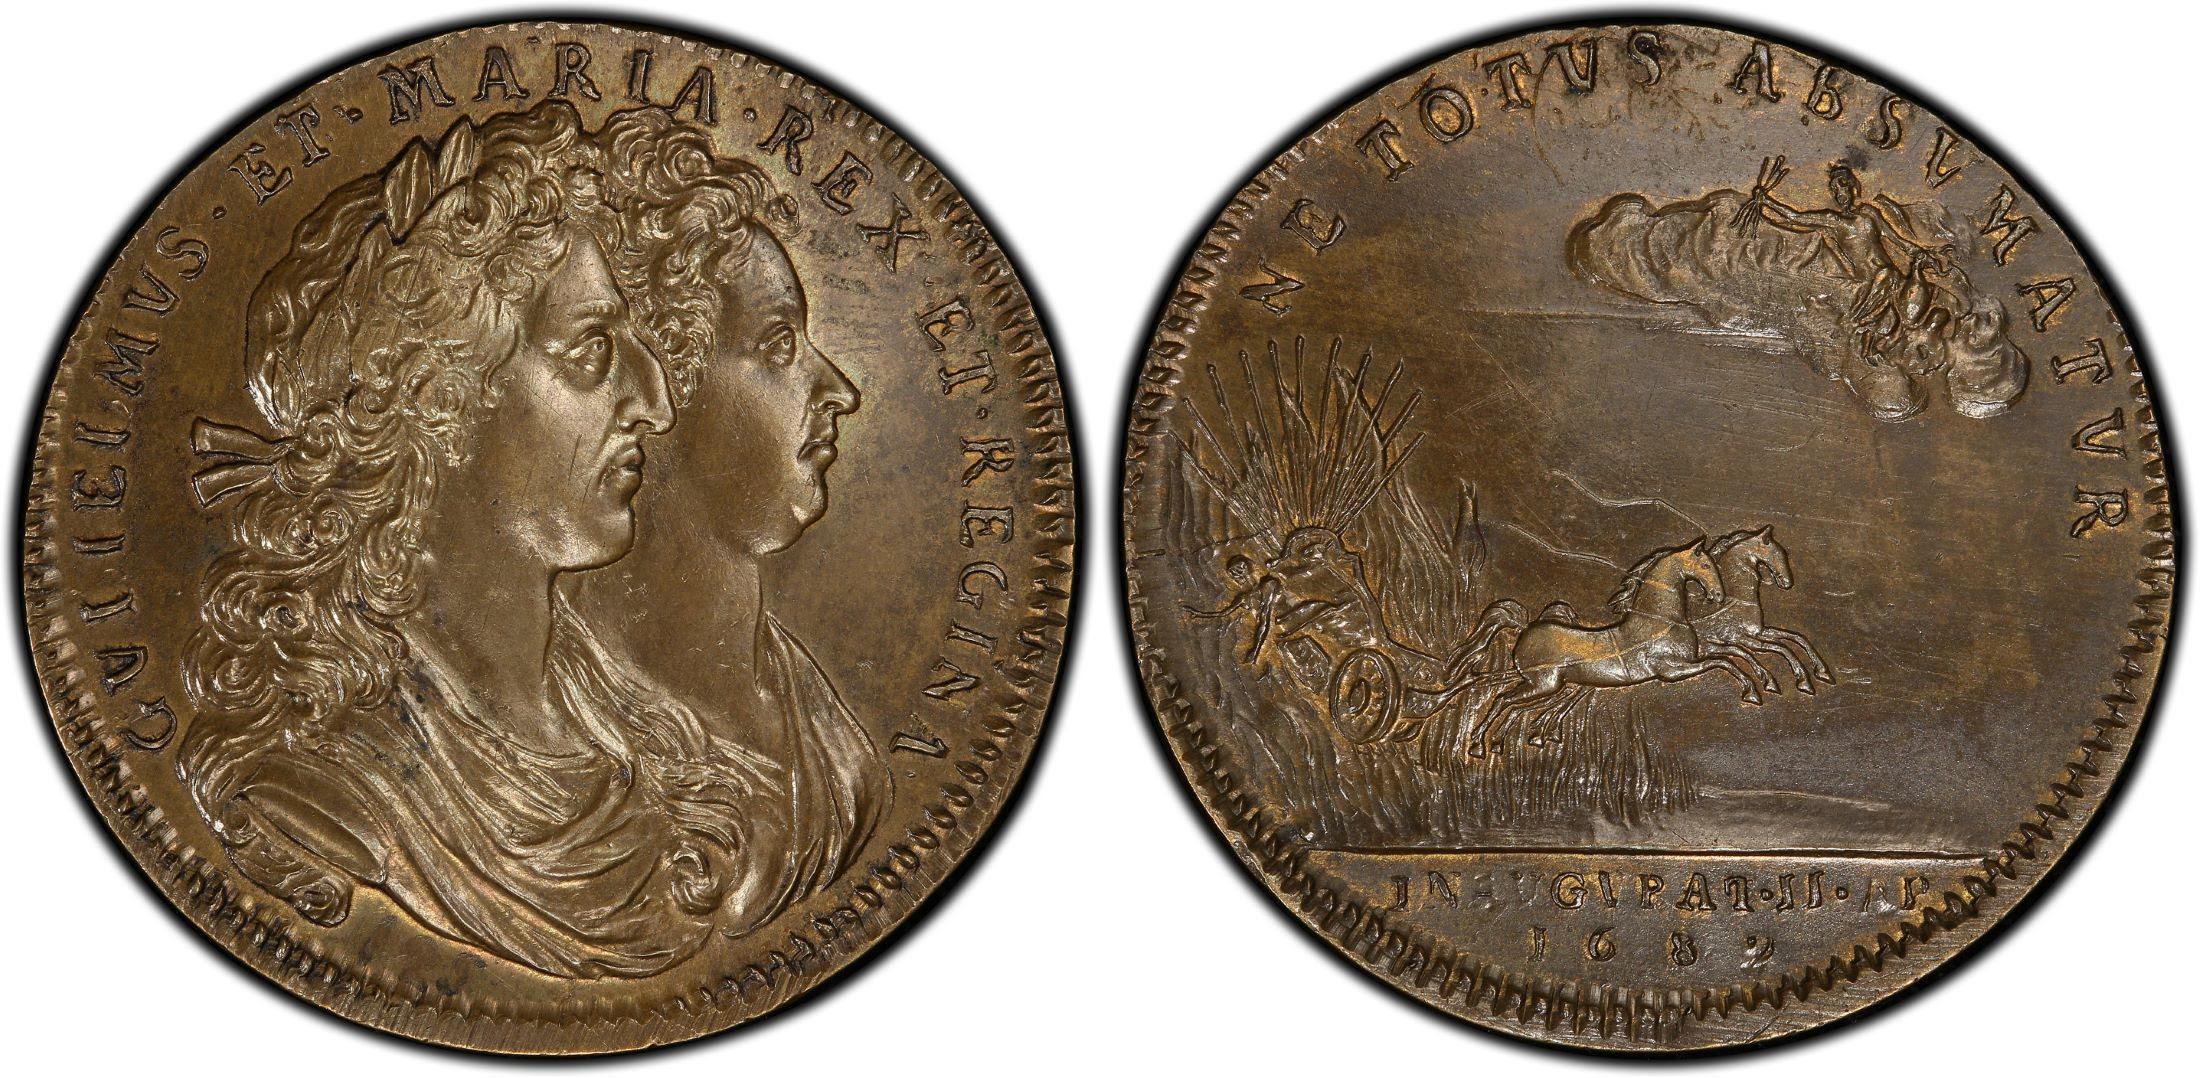 GREAT BRITAIN. England. William and Mary. 1689 Brass Coronation Medal. Images courtesy Atlas Numismatics